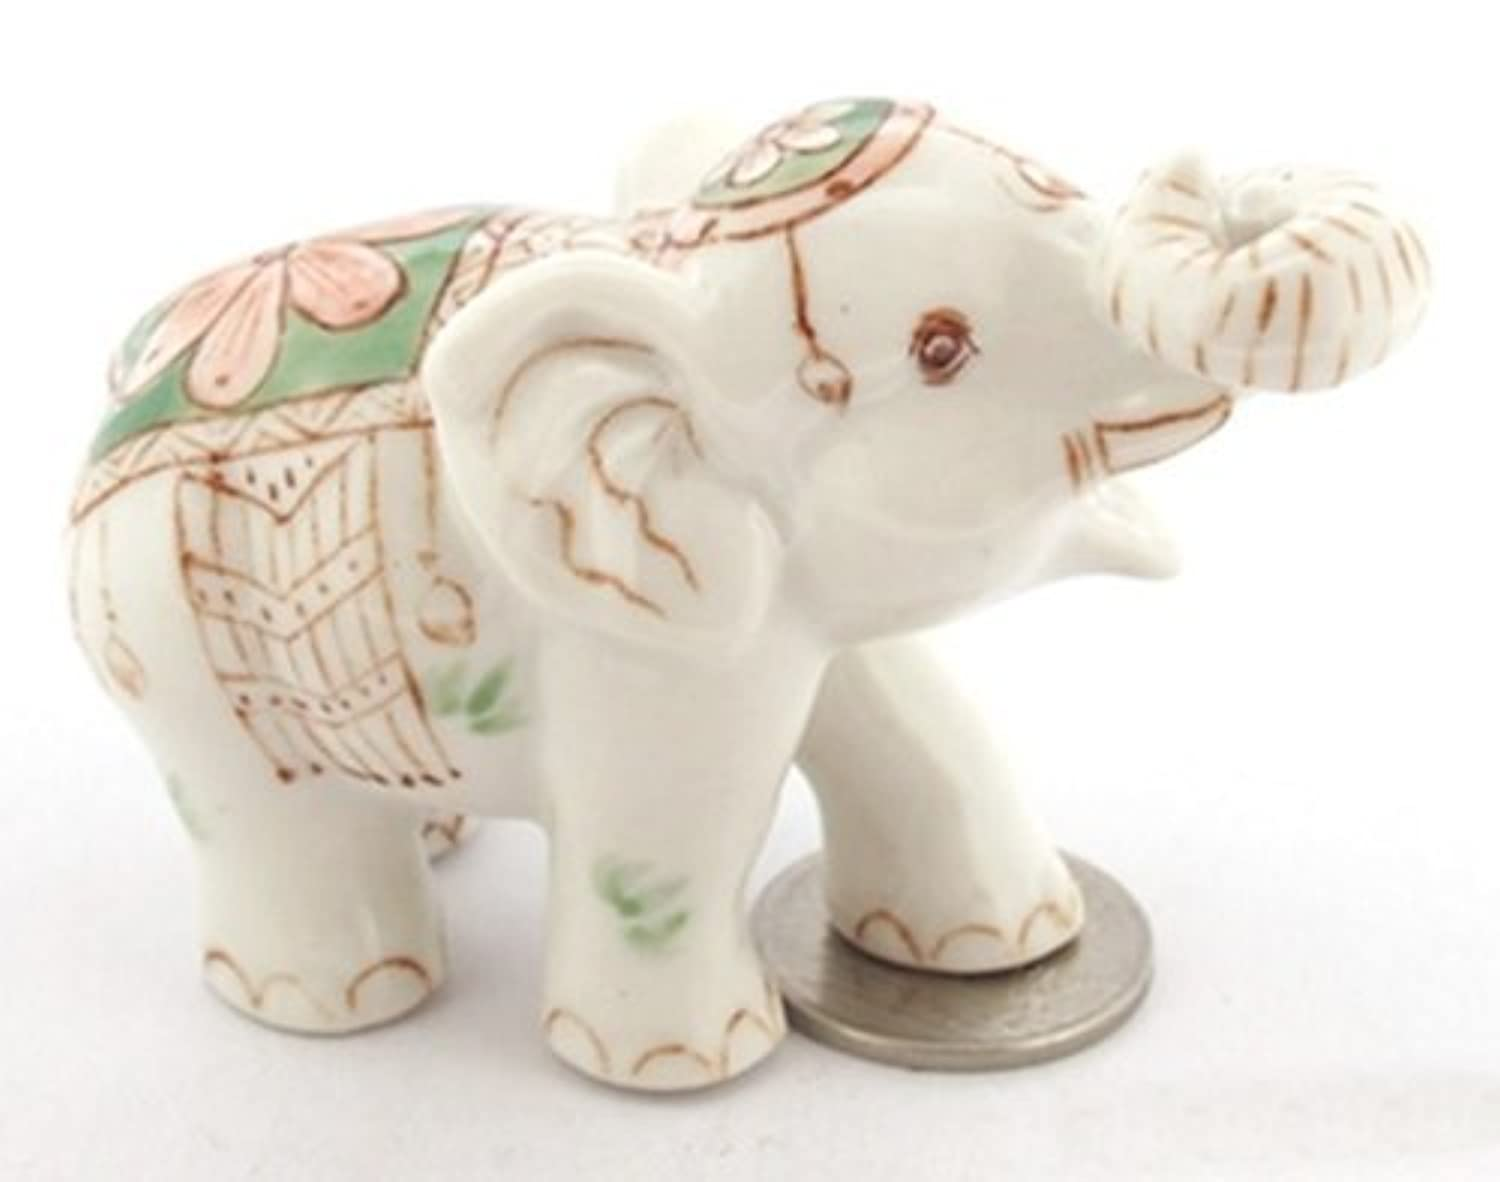 3 D Ceramic Toy Color Elephant Incense Dollhouse Miniatures Free Ship by ChangThai Design [並行輸入品]